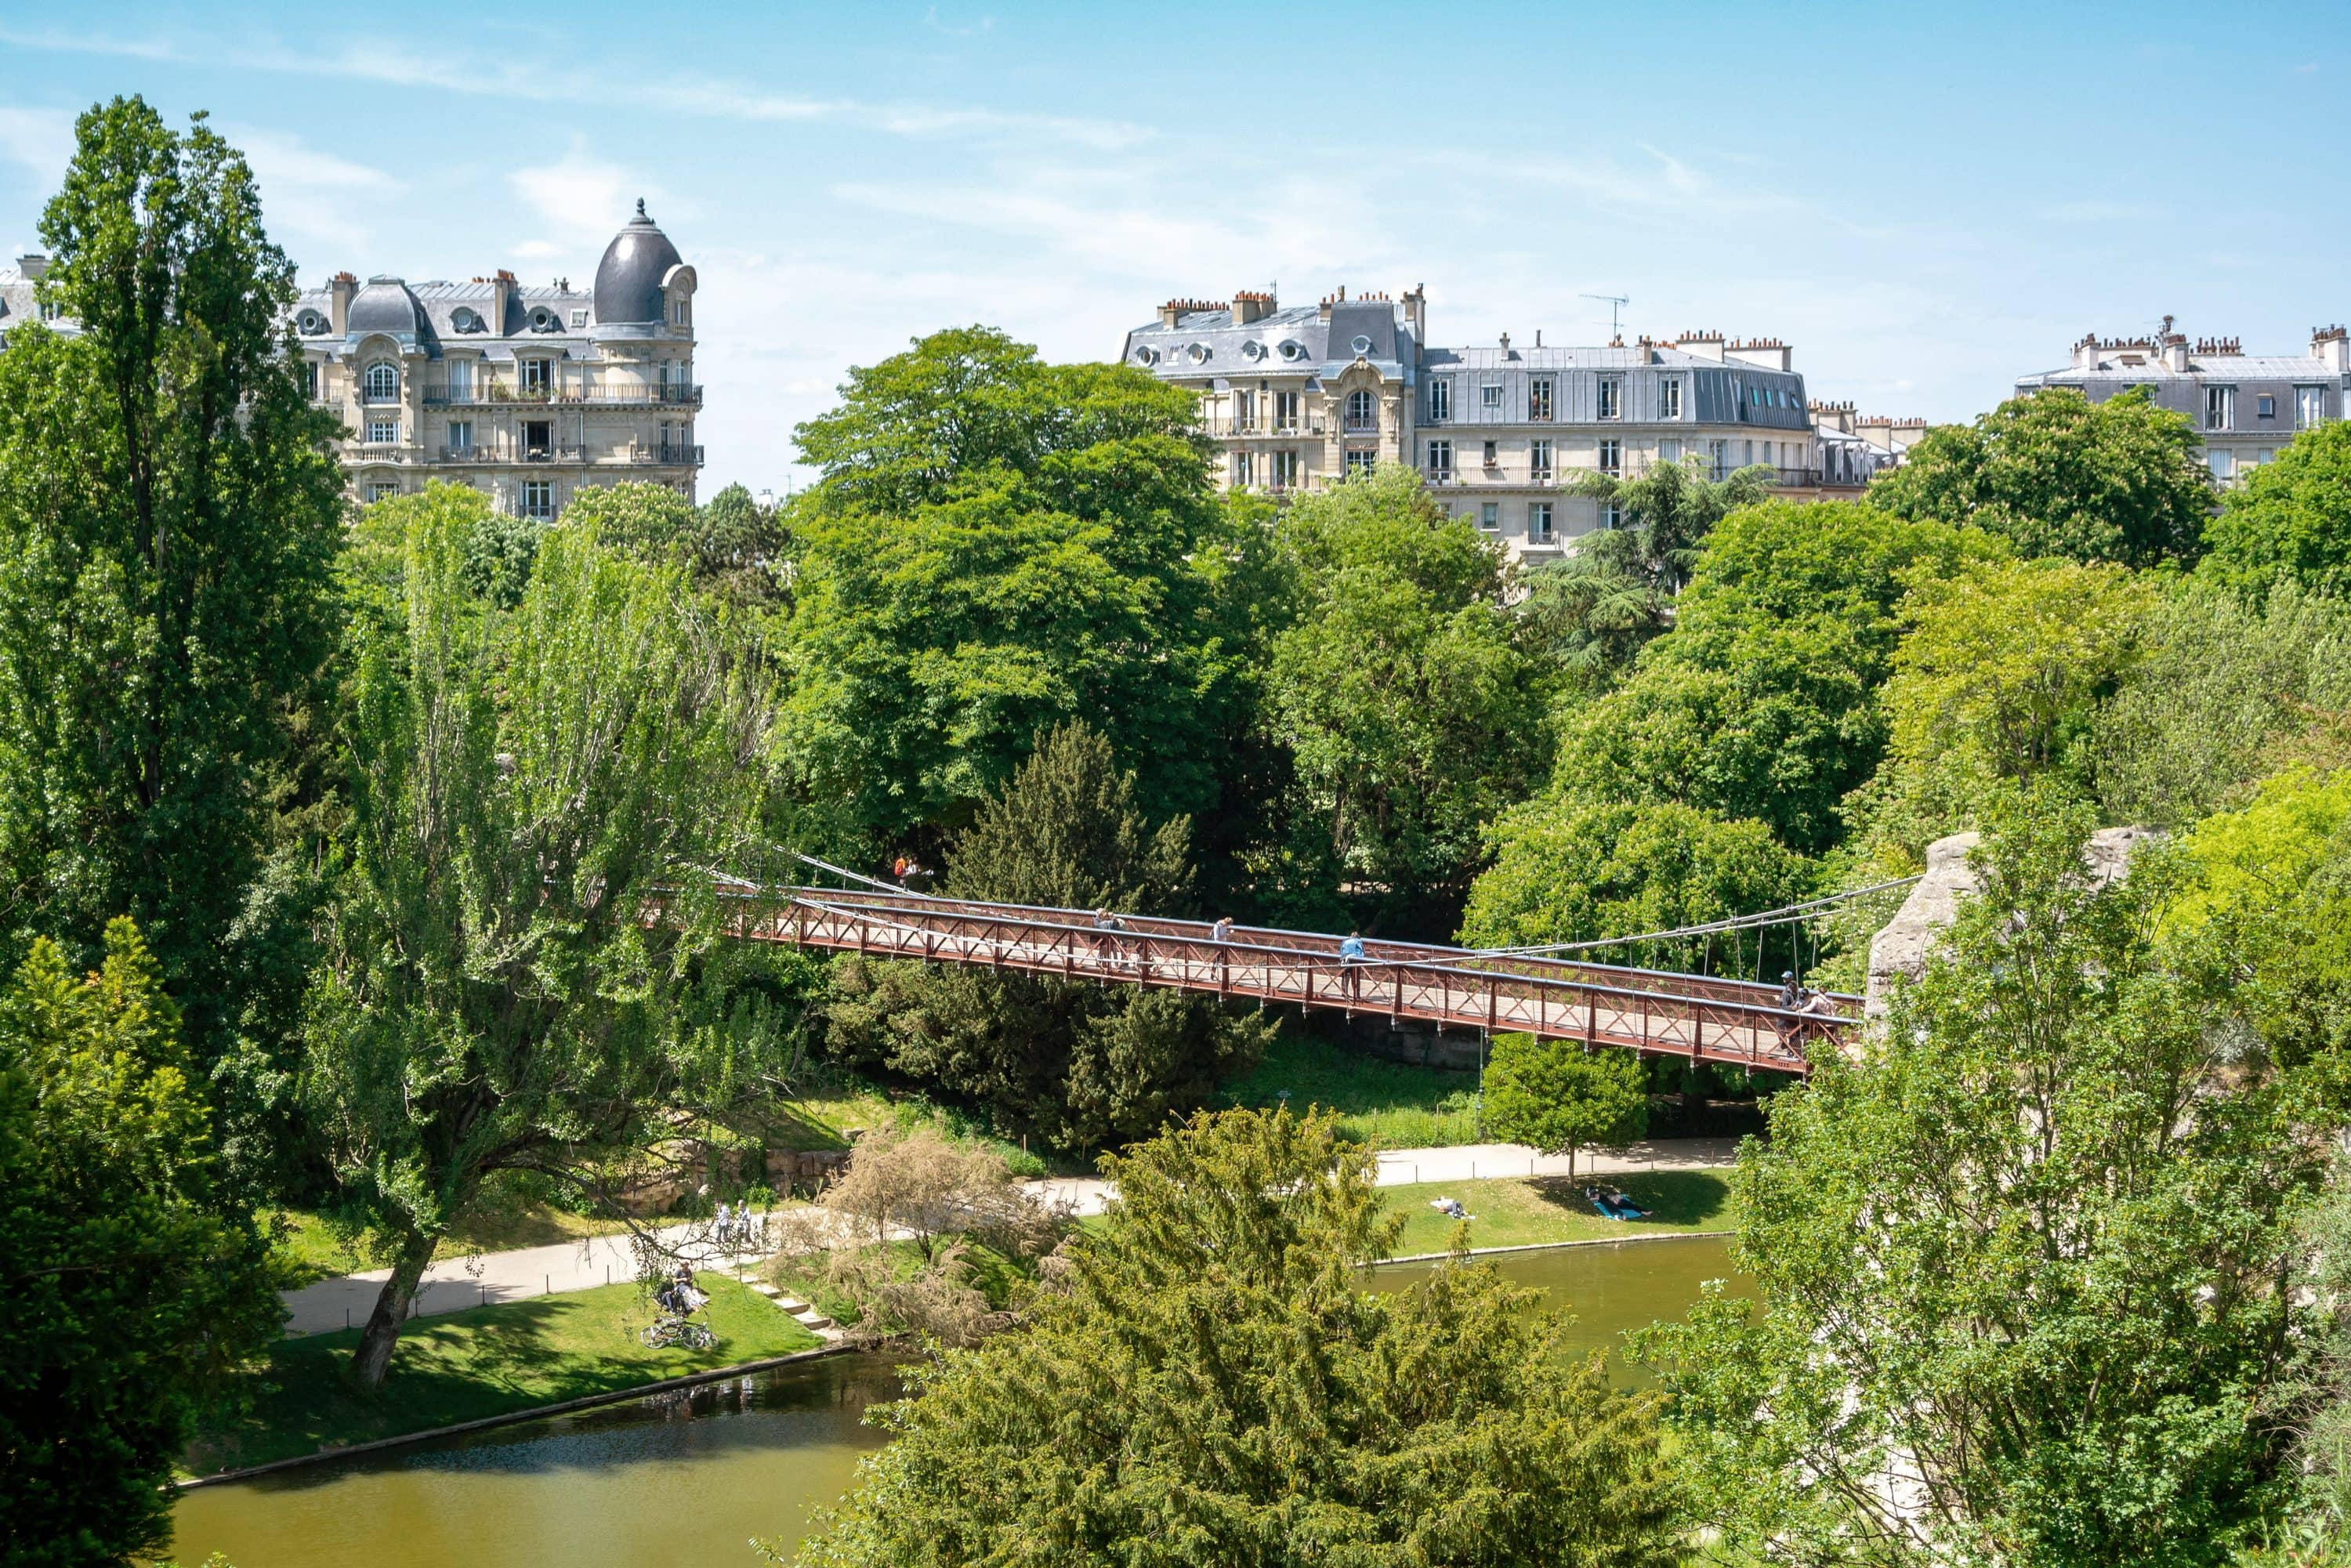 A bridge in Parc des Buttes Chaumont, Paris